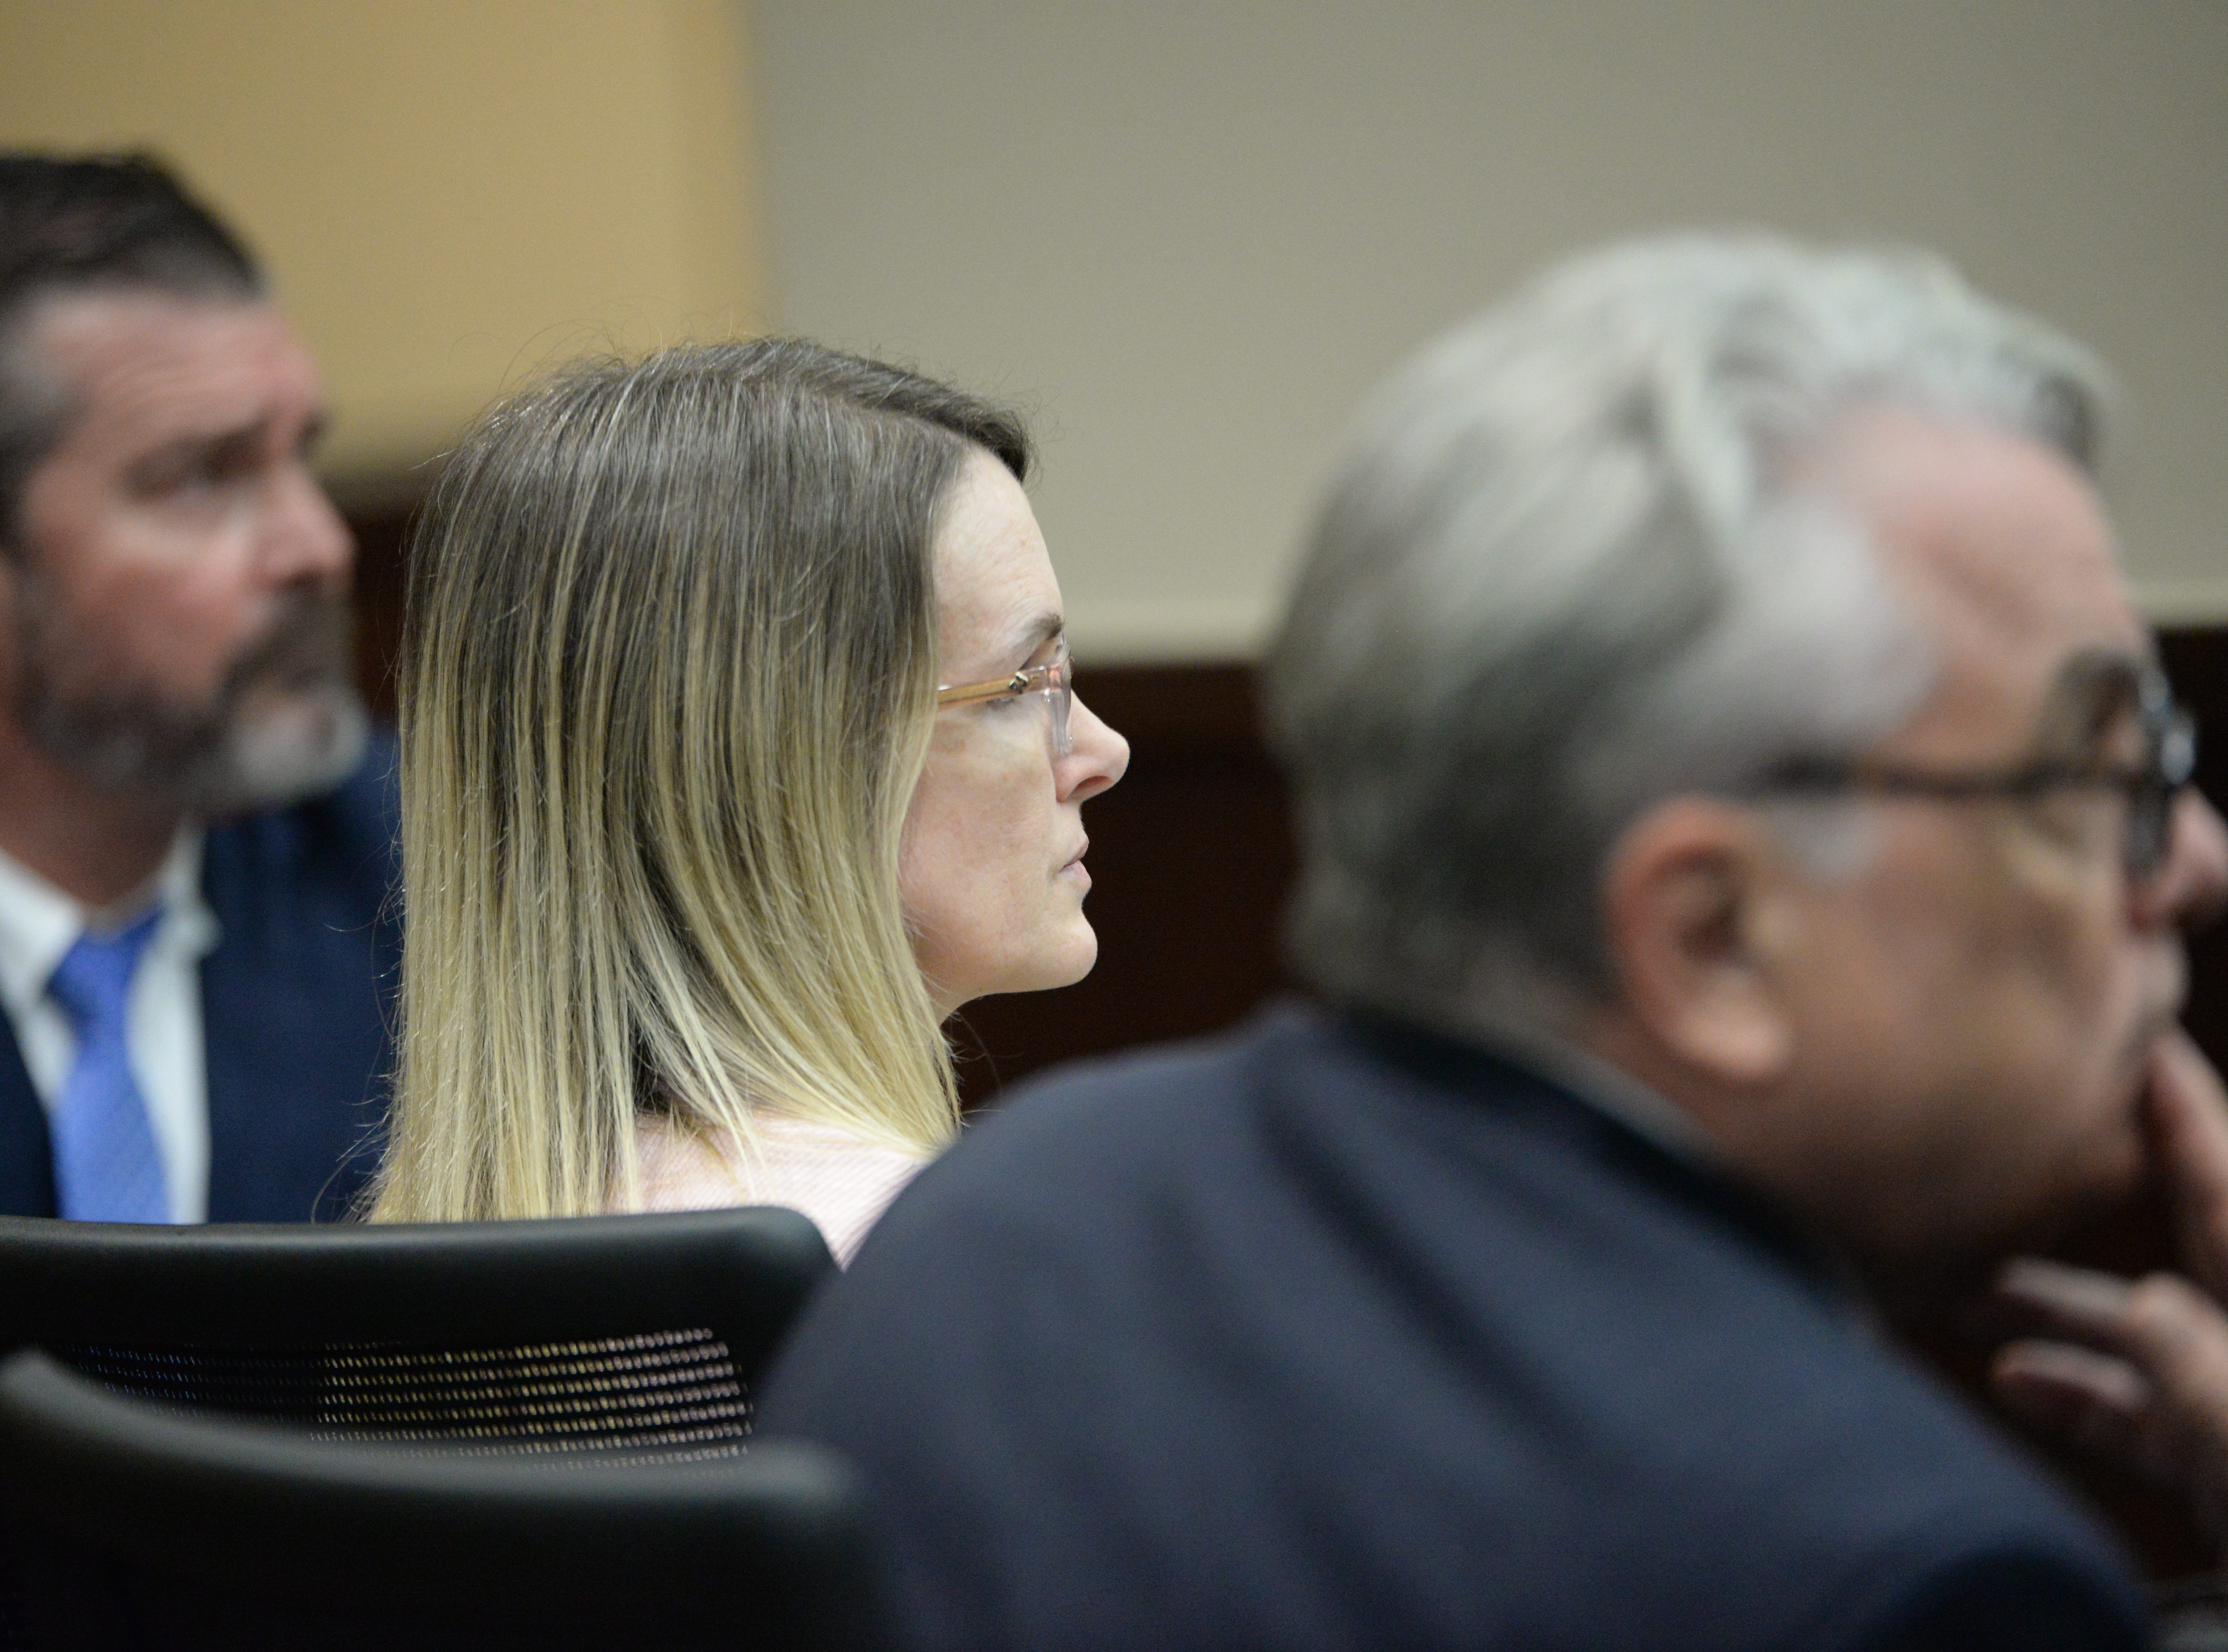 Denise Williams remains stoic as she has through the trial as she hears the verdict, convicting her of the murder of her husband Mike Williams at the Leon County Courthouse Friday, Dec. 14, 2018.